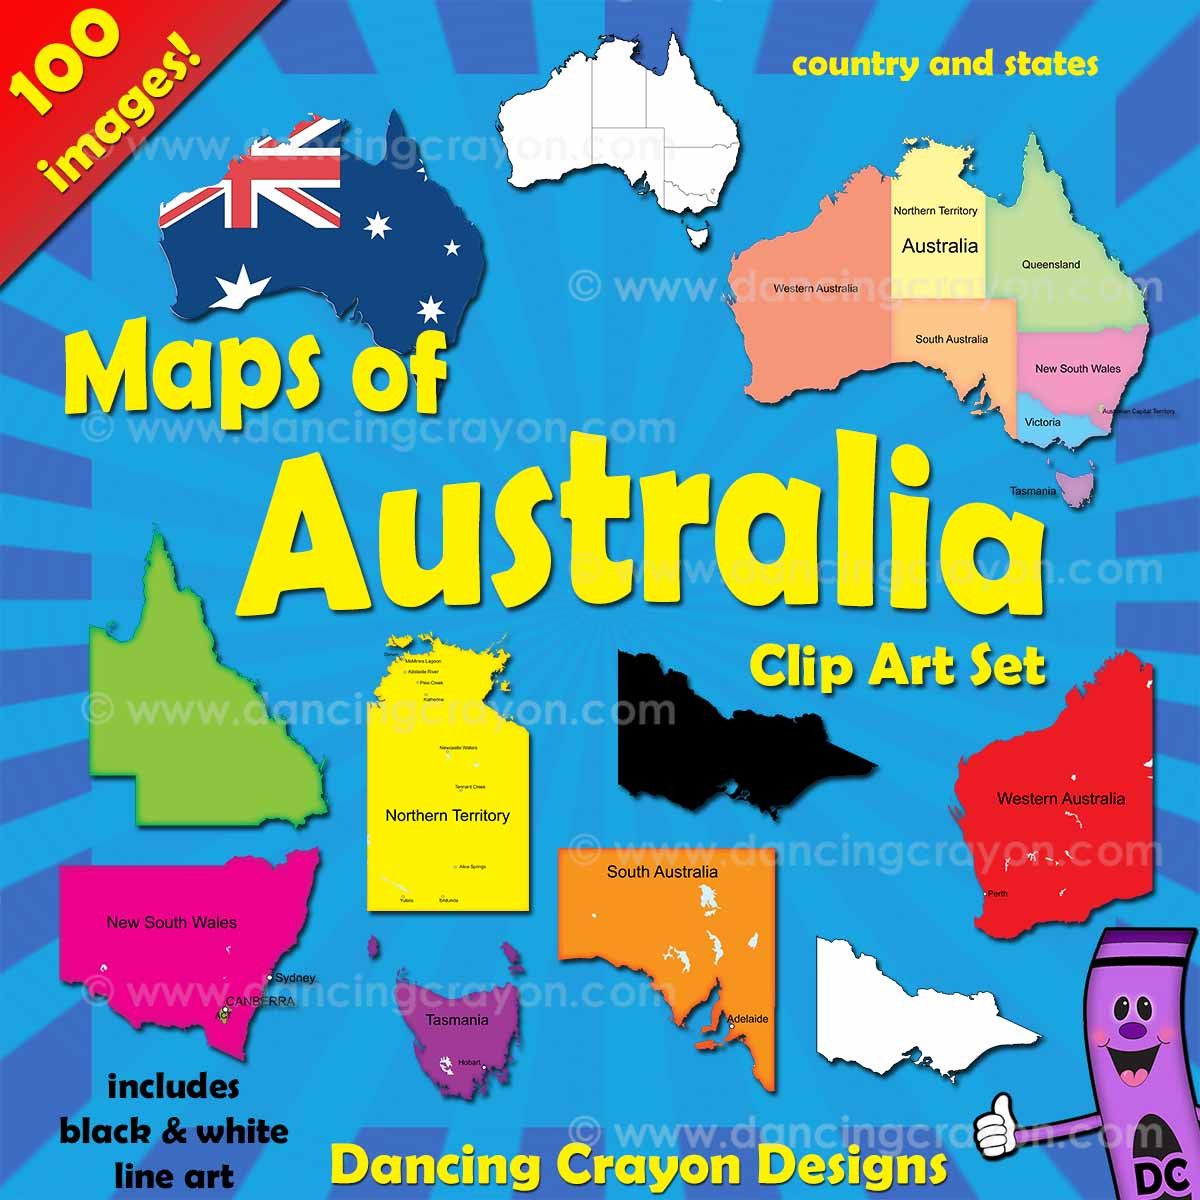 Australia Map And States.Australia Maps Clip Art Maps Of Australia And Australian States